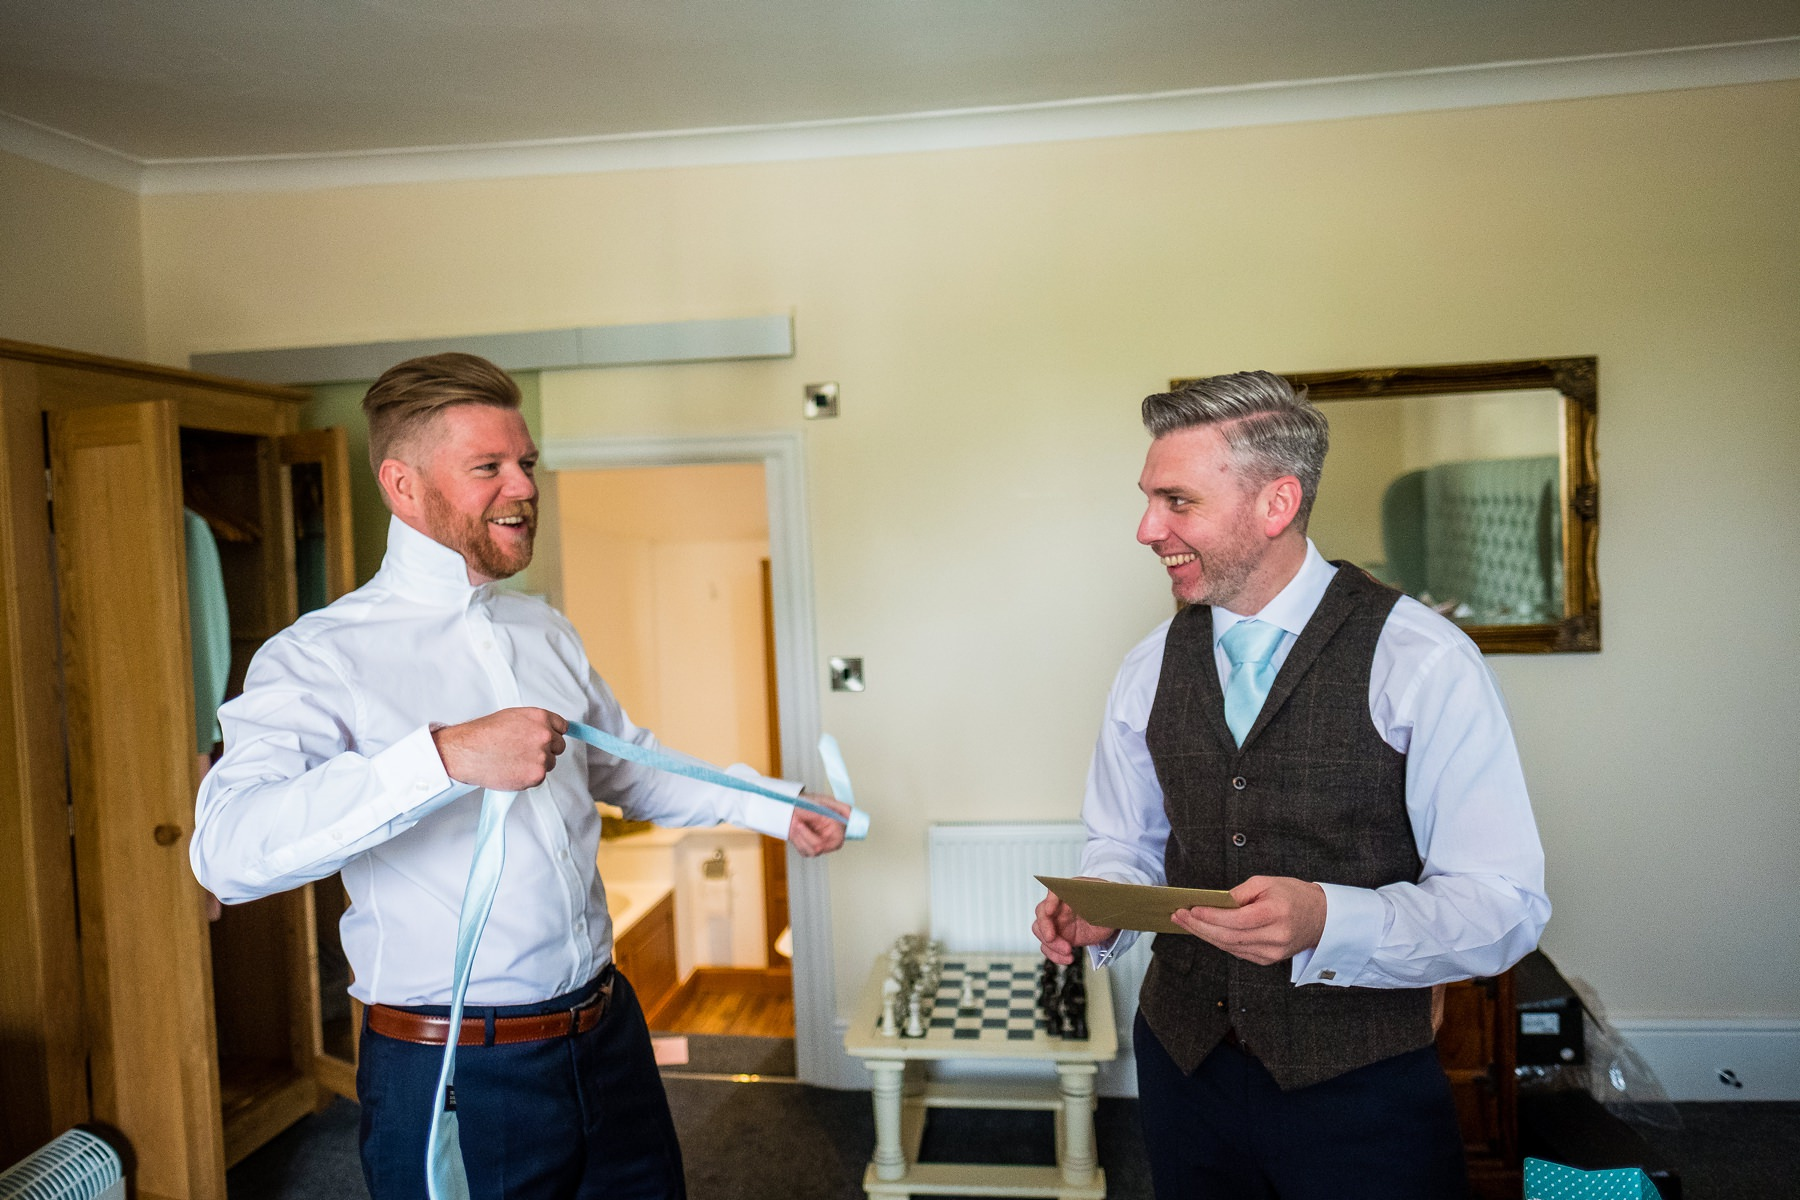 groom and best man getting ready